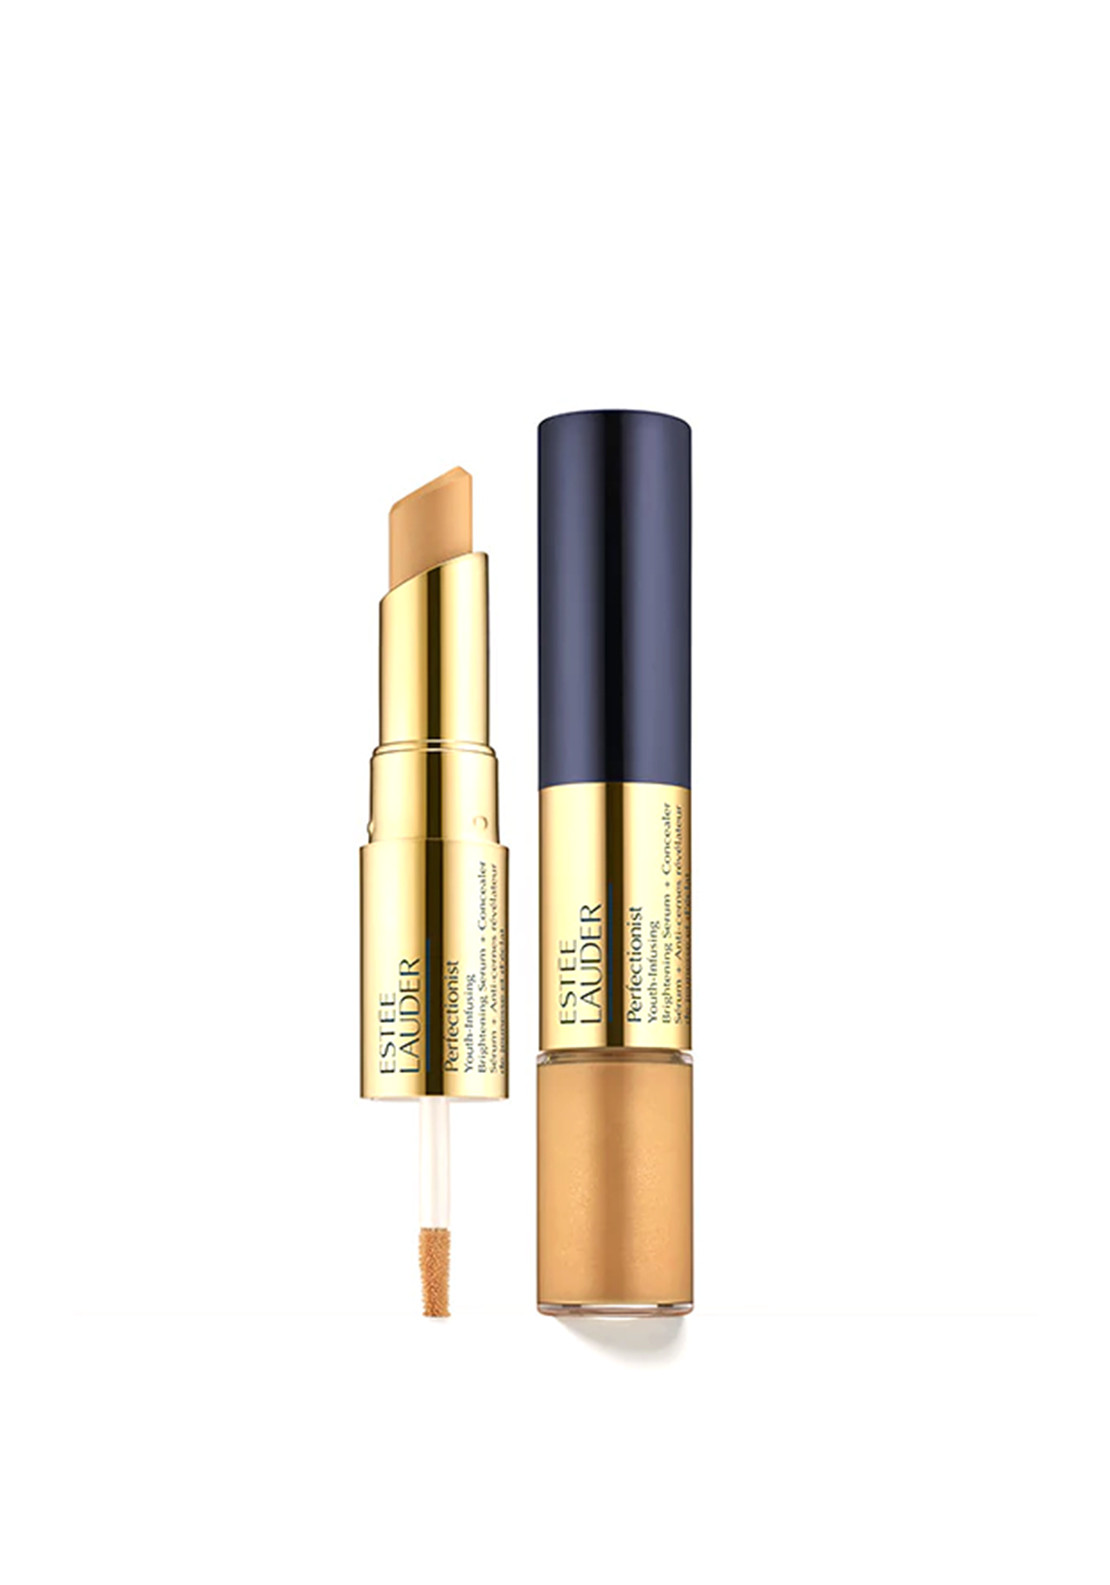 Estee Lauder Perfectionist Youth-Infusing Brightening Serum & Concealer, Medium Cool